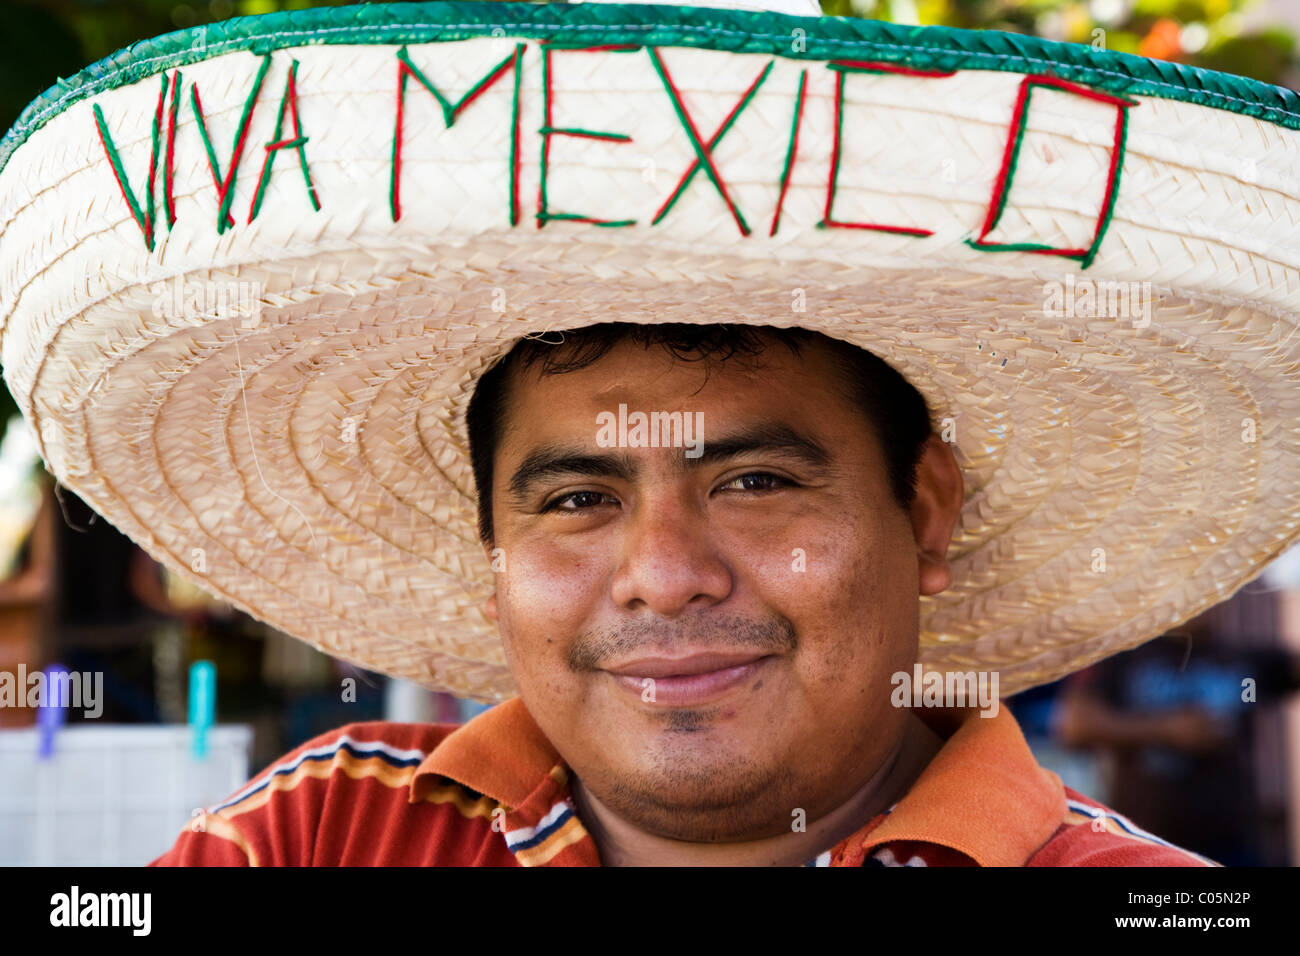 man in mexican